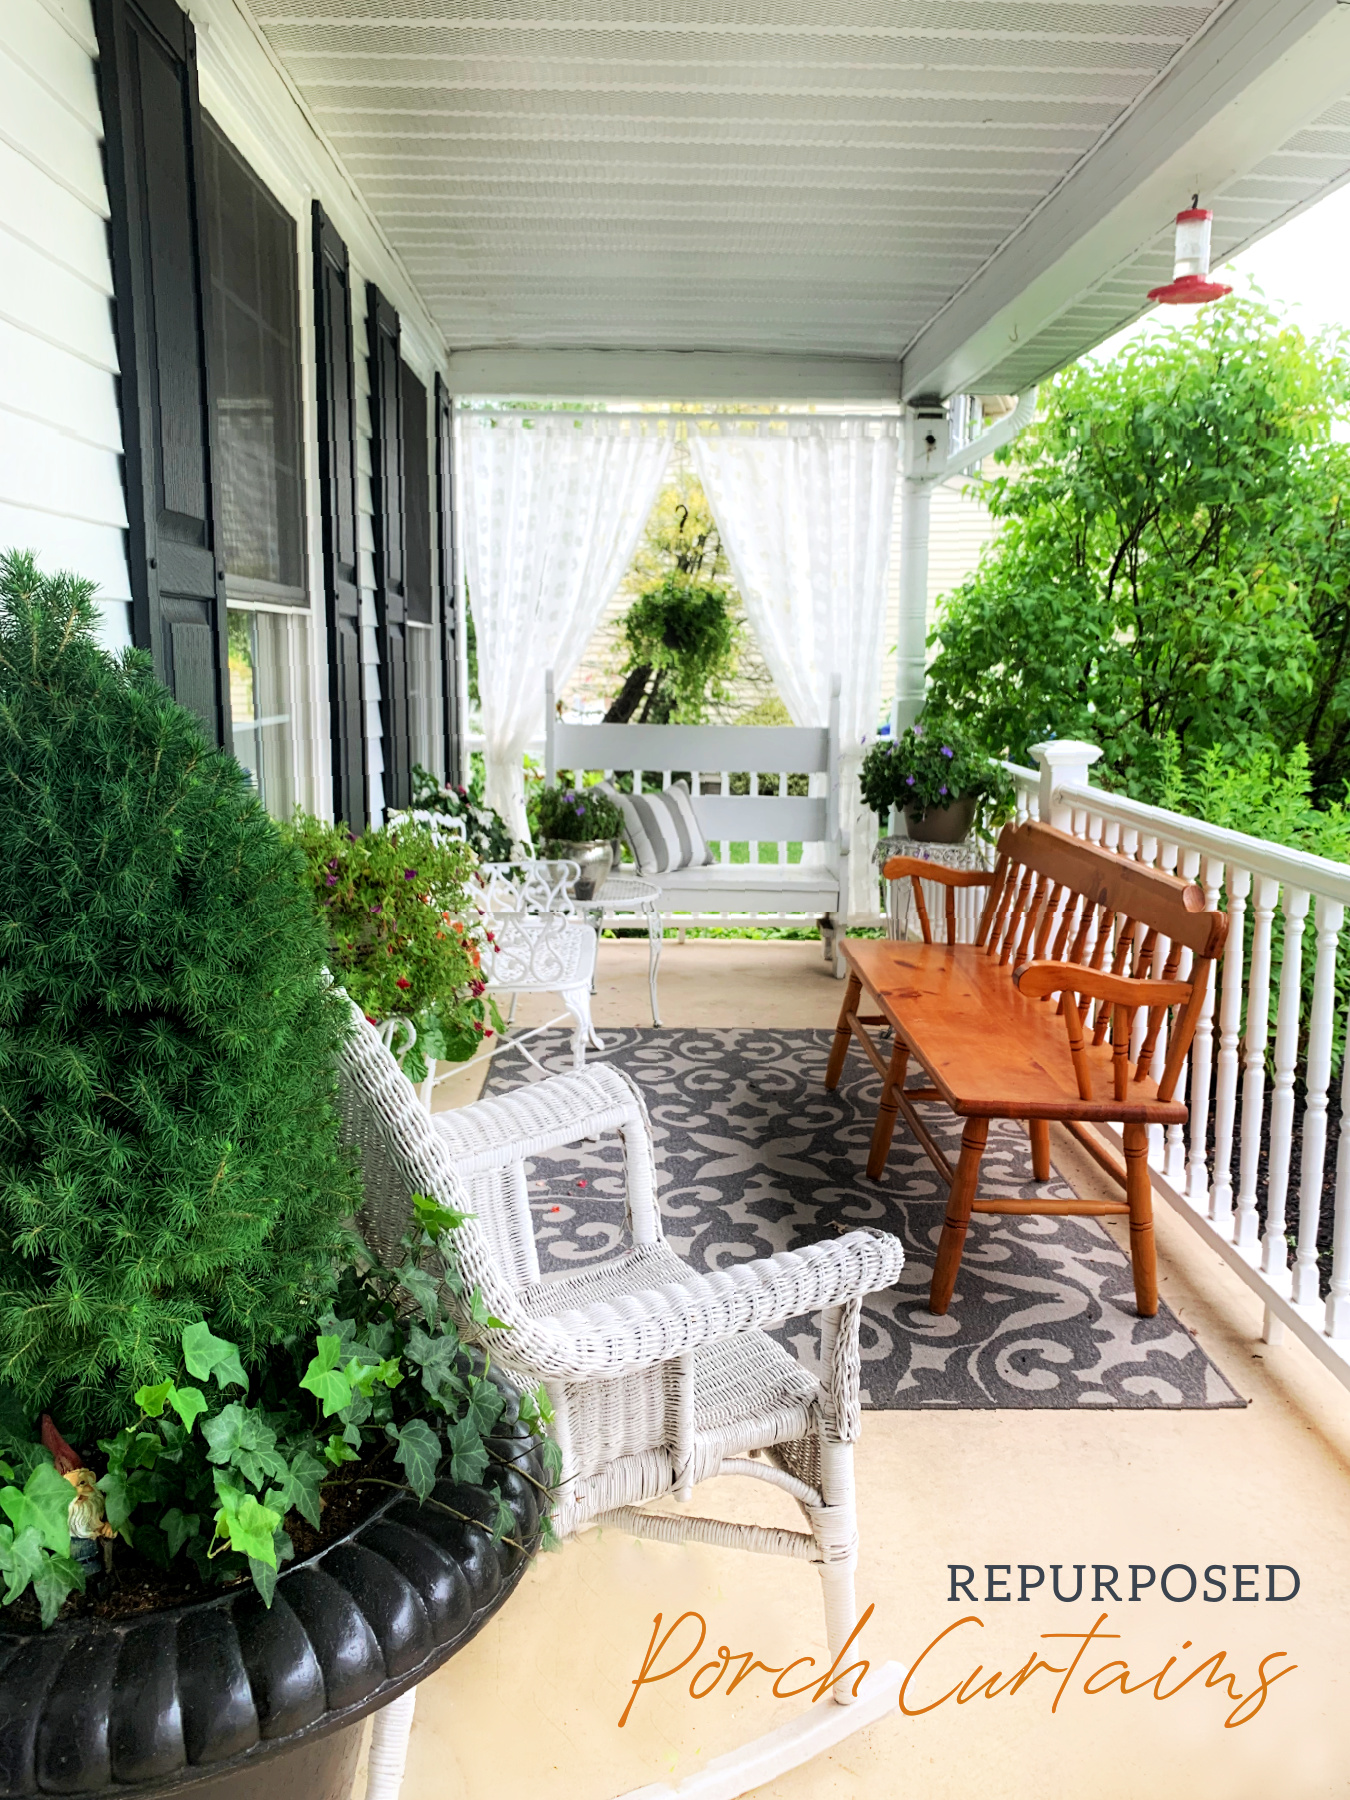 Easy how-to for creating a welcoming, breezy porch using repurposed sheer curtains to give a little privacy, romance and curb appeal to your home.